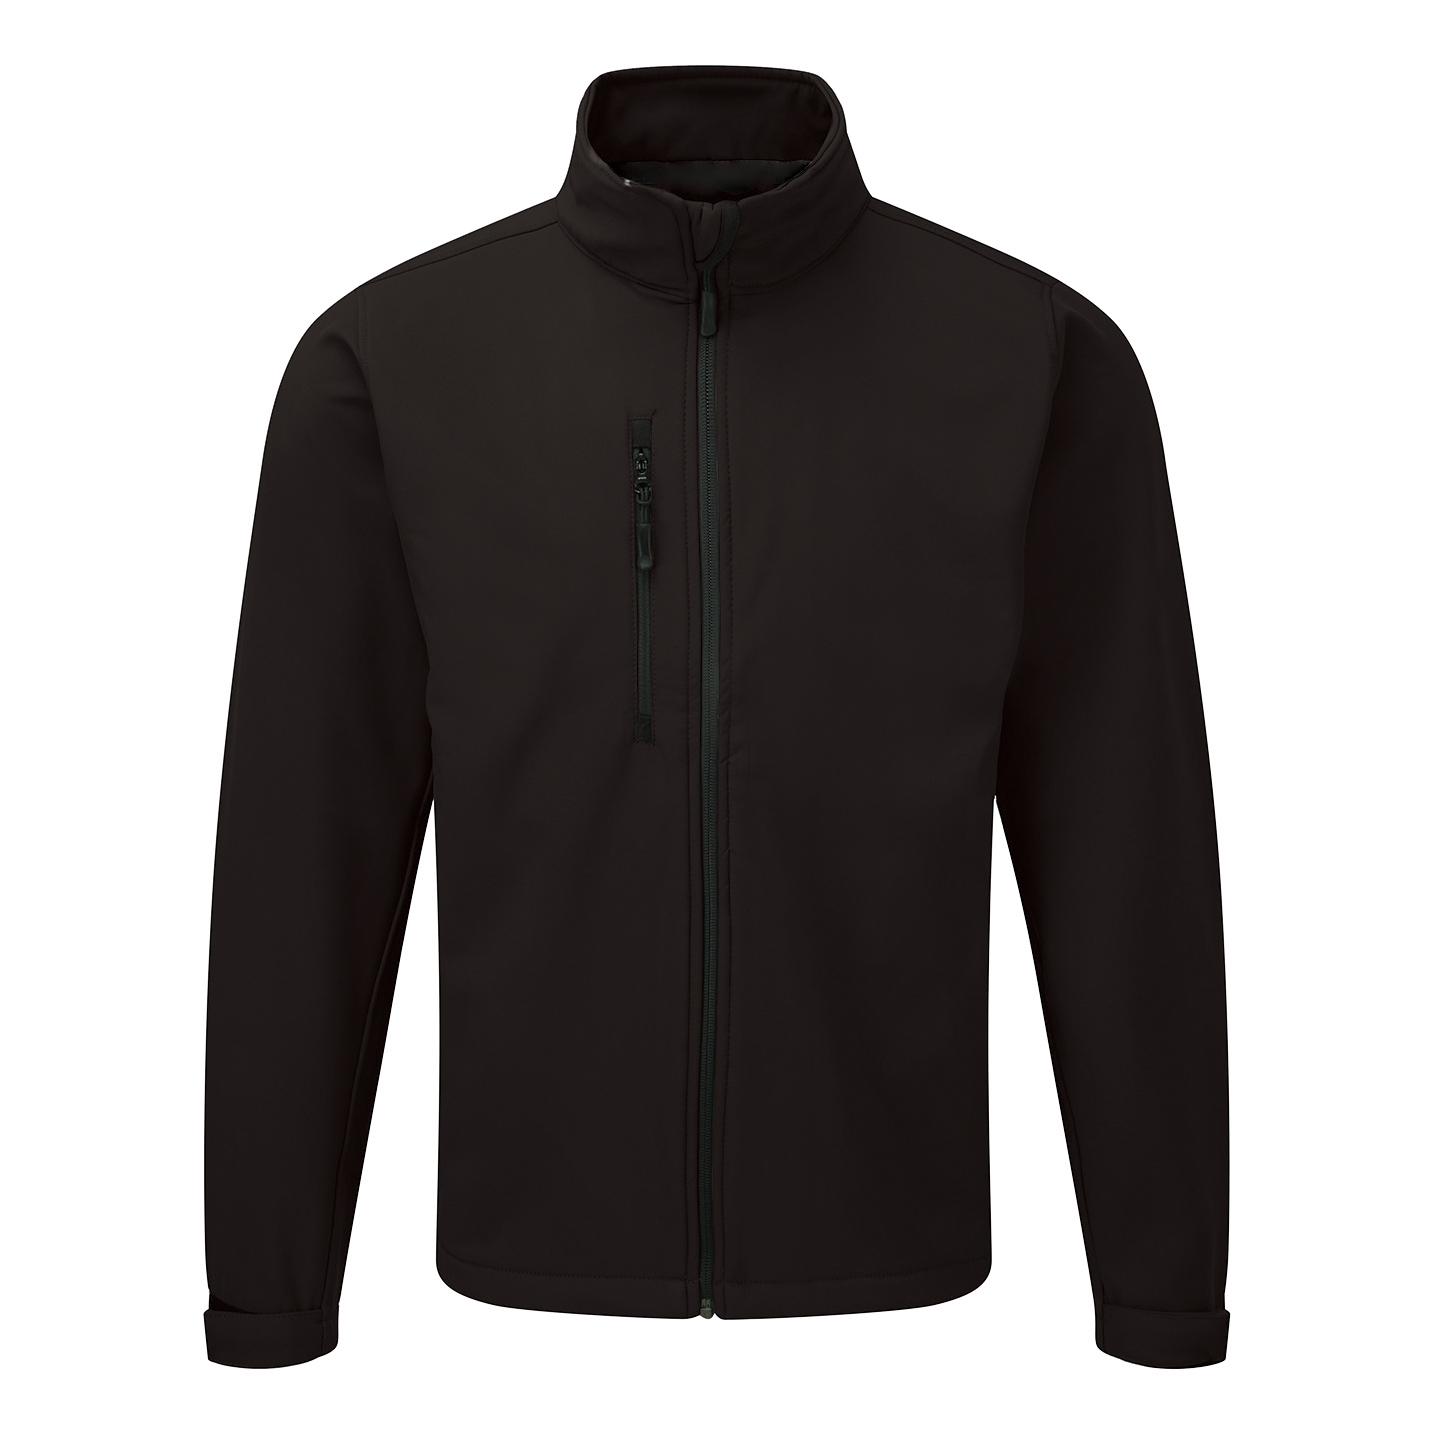 Jacket Soft Shell Water Resistant Breathable 320gsm Large Black